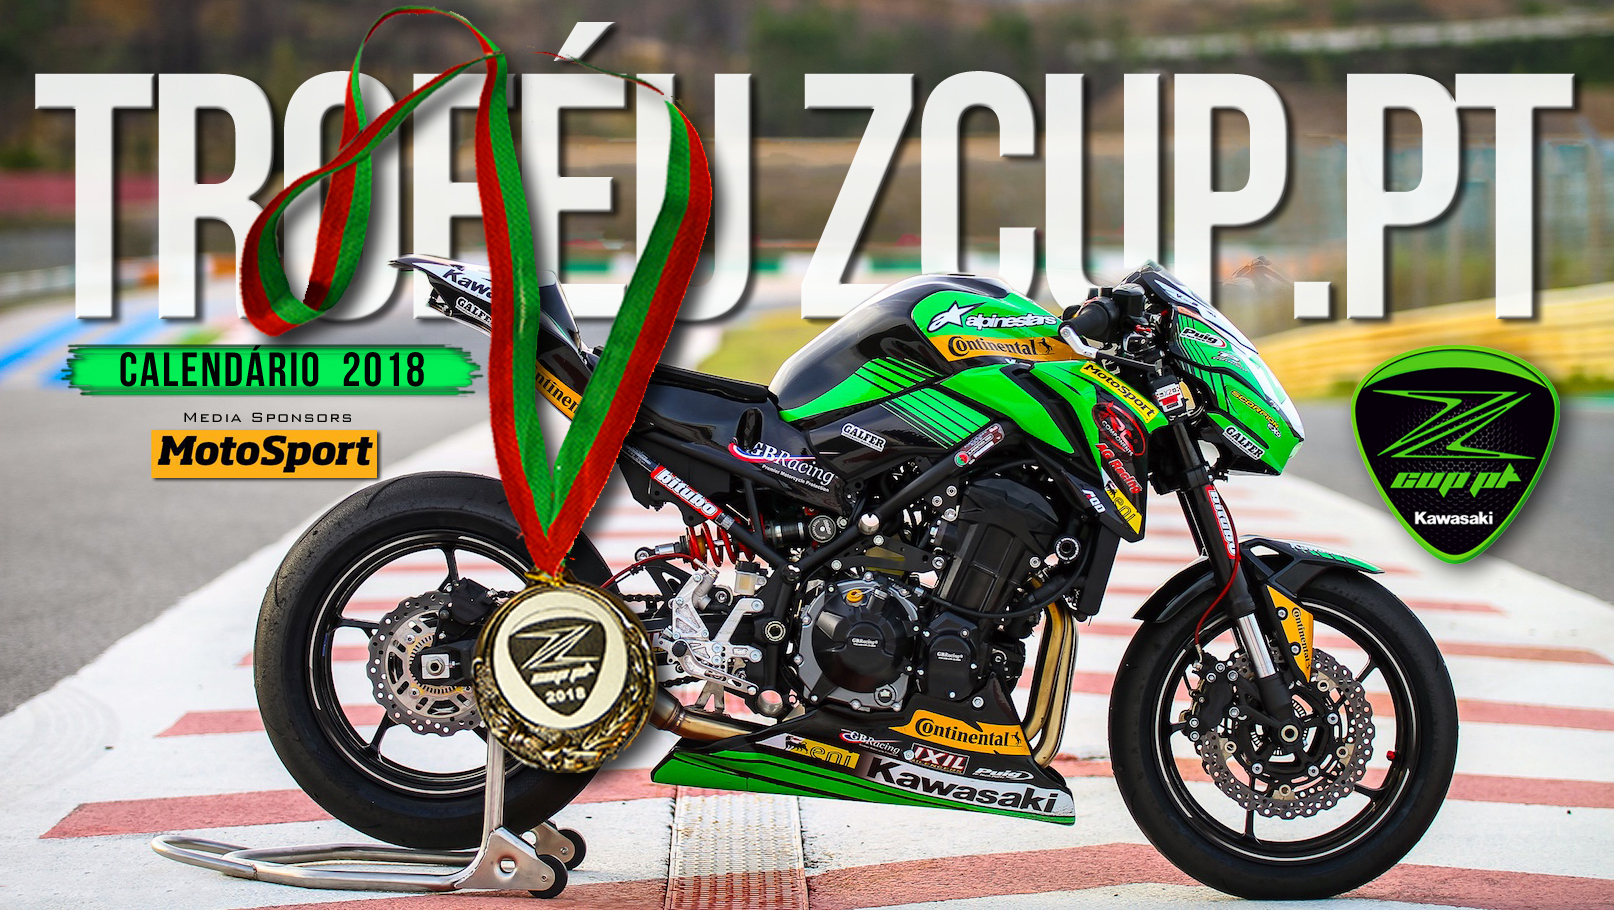 MotoSport homenageado como Media Sponsor do Troféu Kawasaki ZCUP.PT